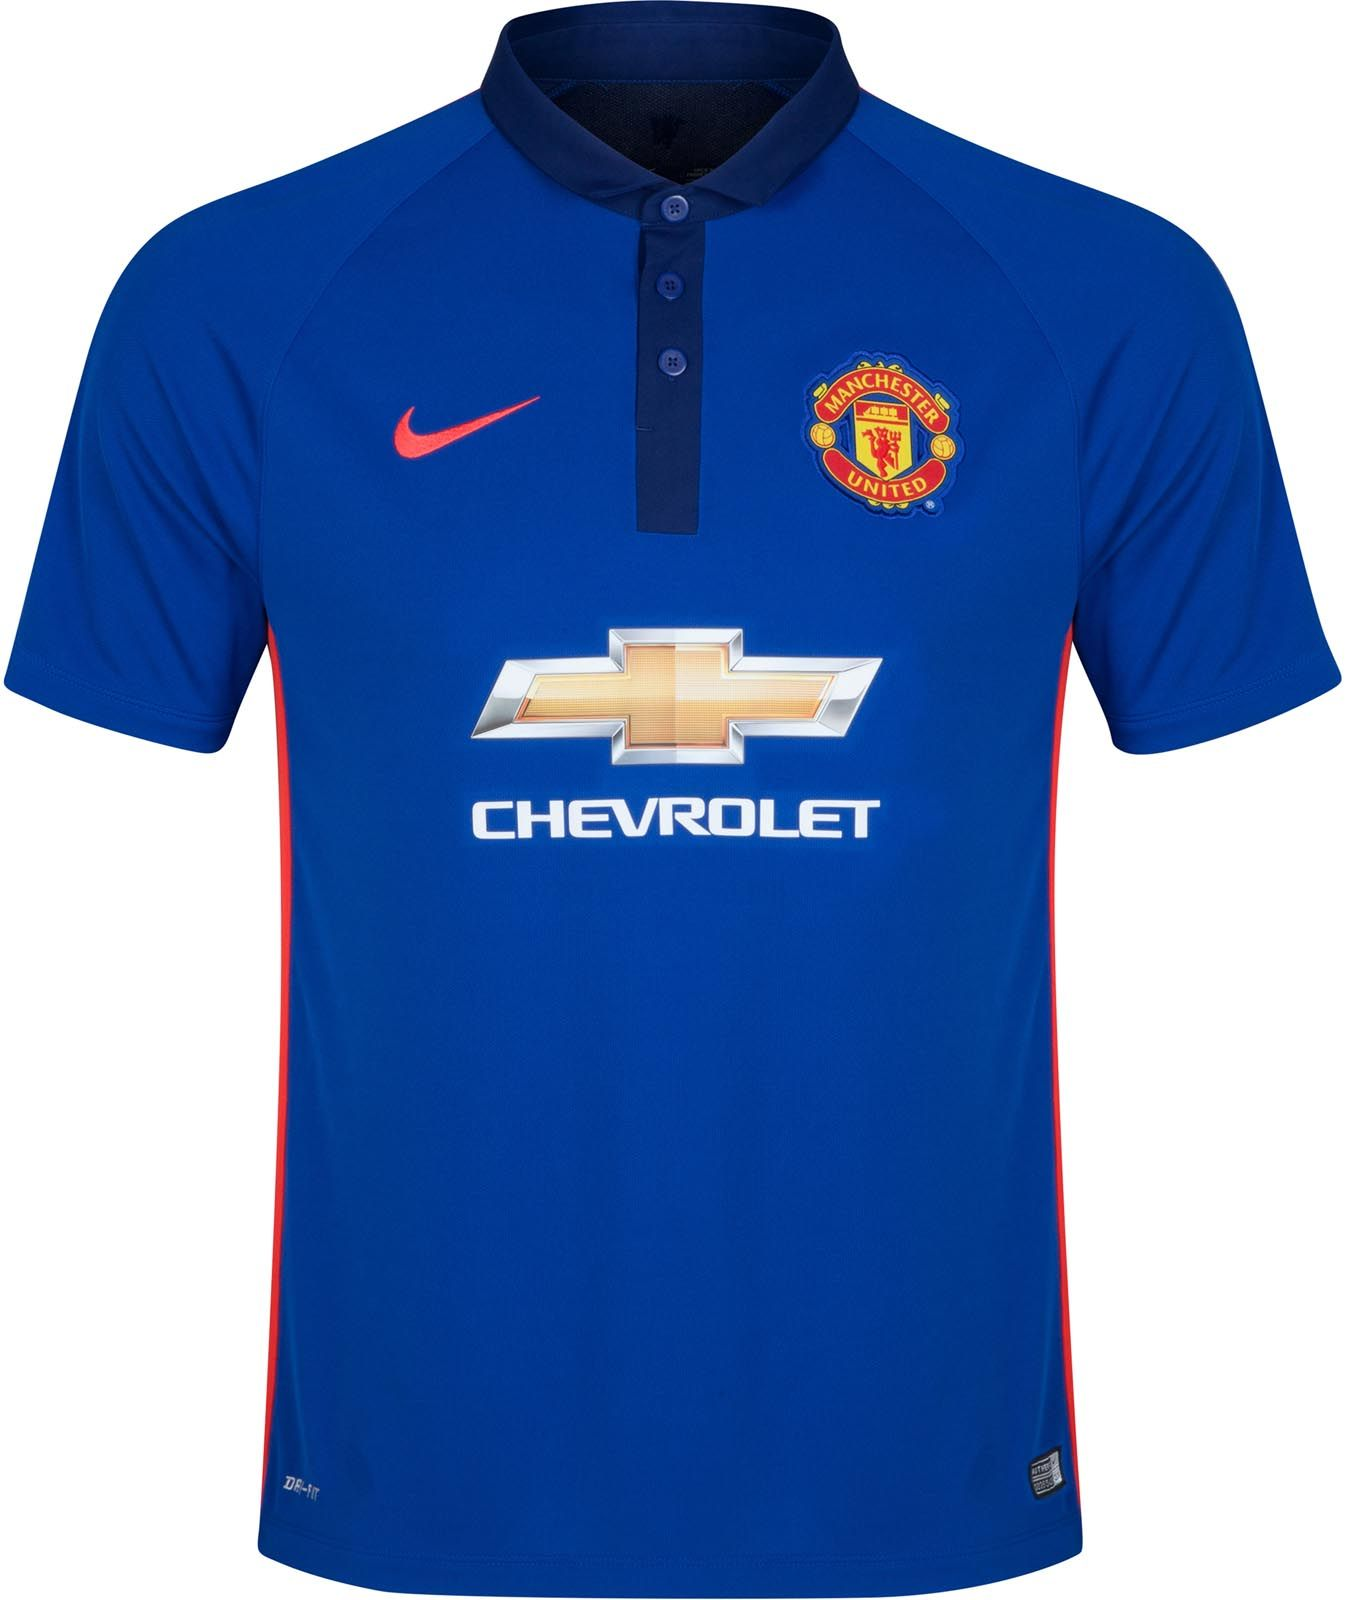 New Manchester United Kits! The new Chevrolet Man Utd Home Kit features a  classical and unique kit collar, while the Manchester United Away kit is  white ...